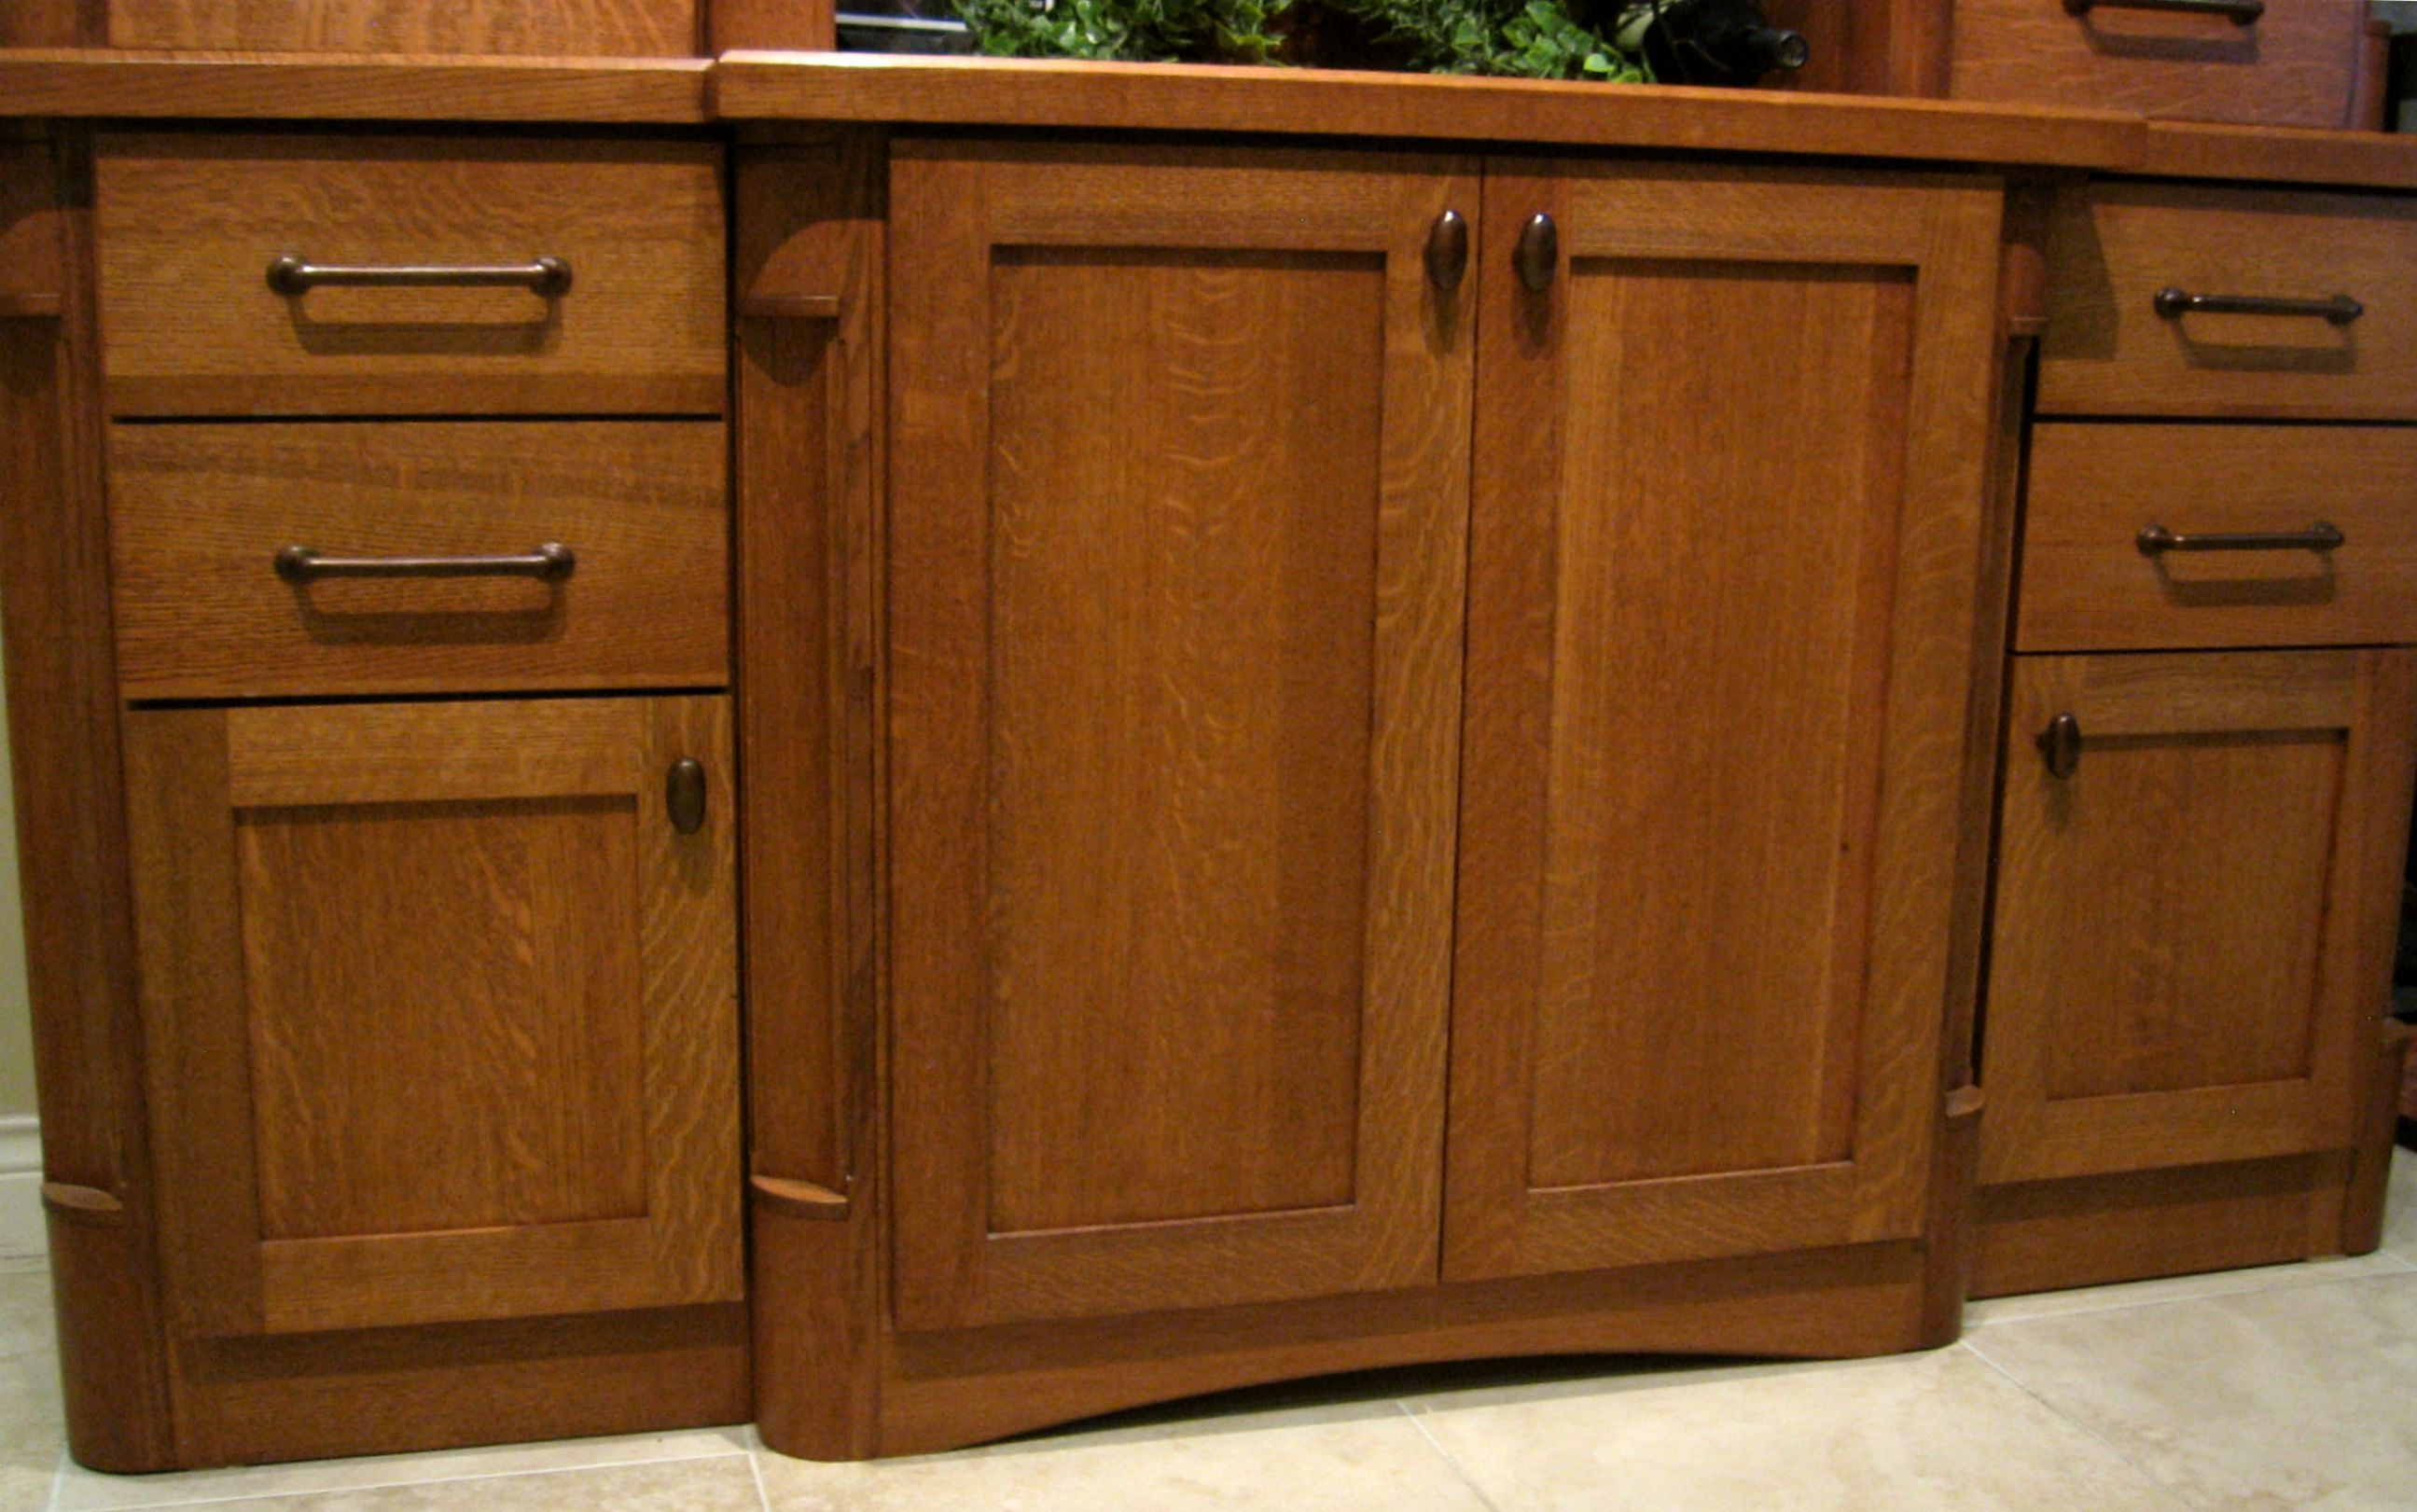 hardware for oak kitchen cabinets quartersawn oak cabinet hardware ideas cabinet works 7003